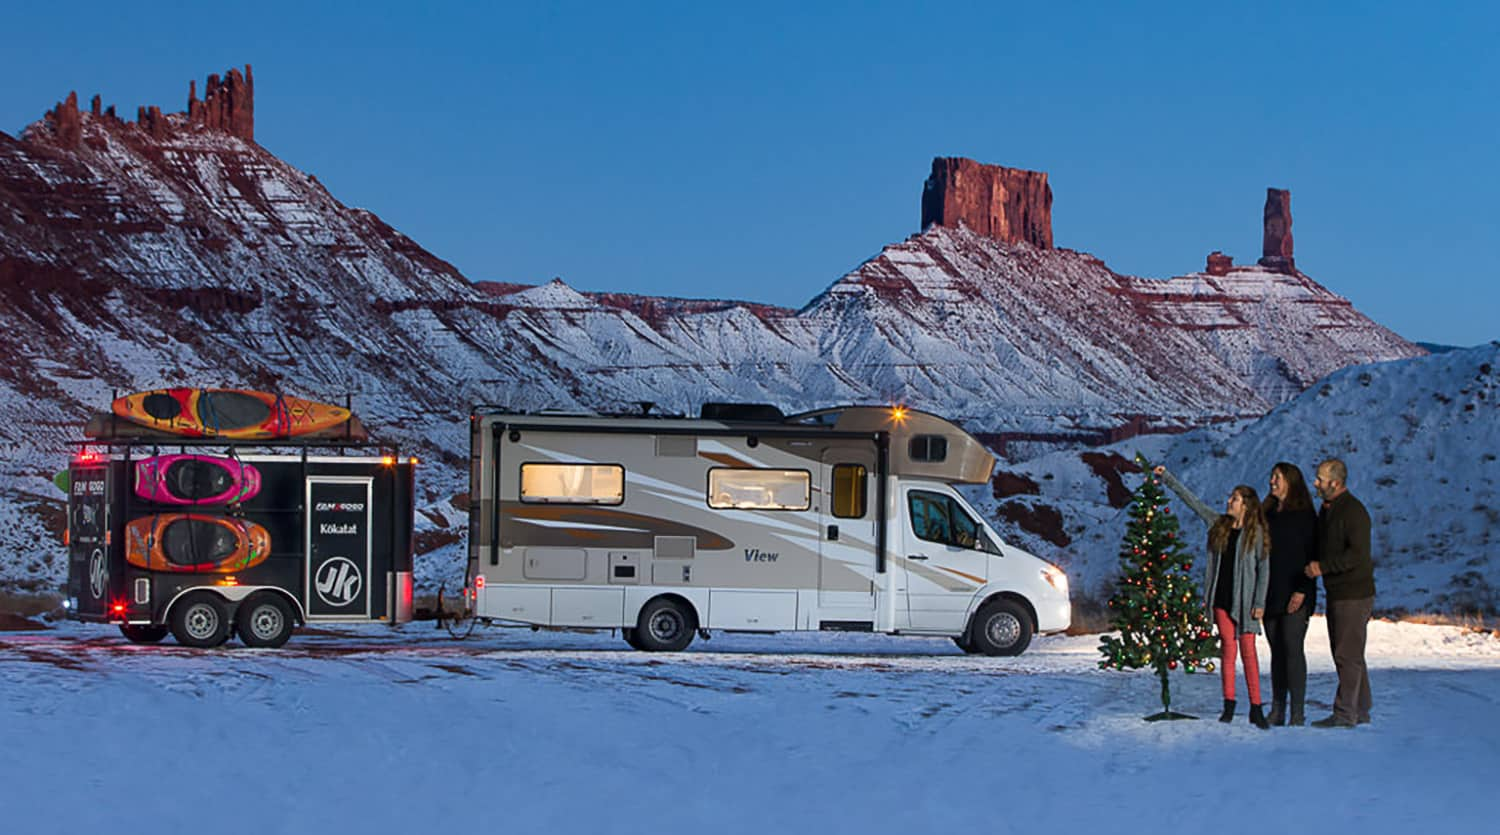 How To Insulate An RV Underbelly: The Start-to-Finish Guide